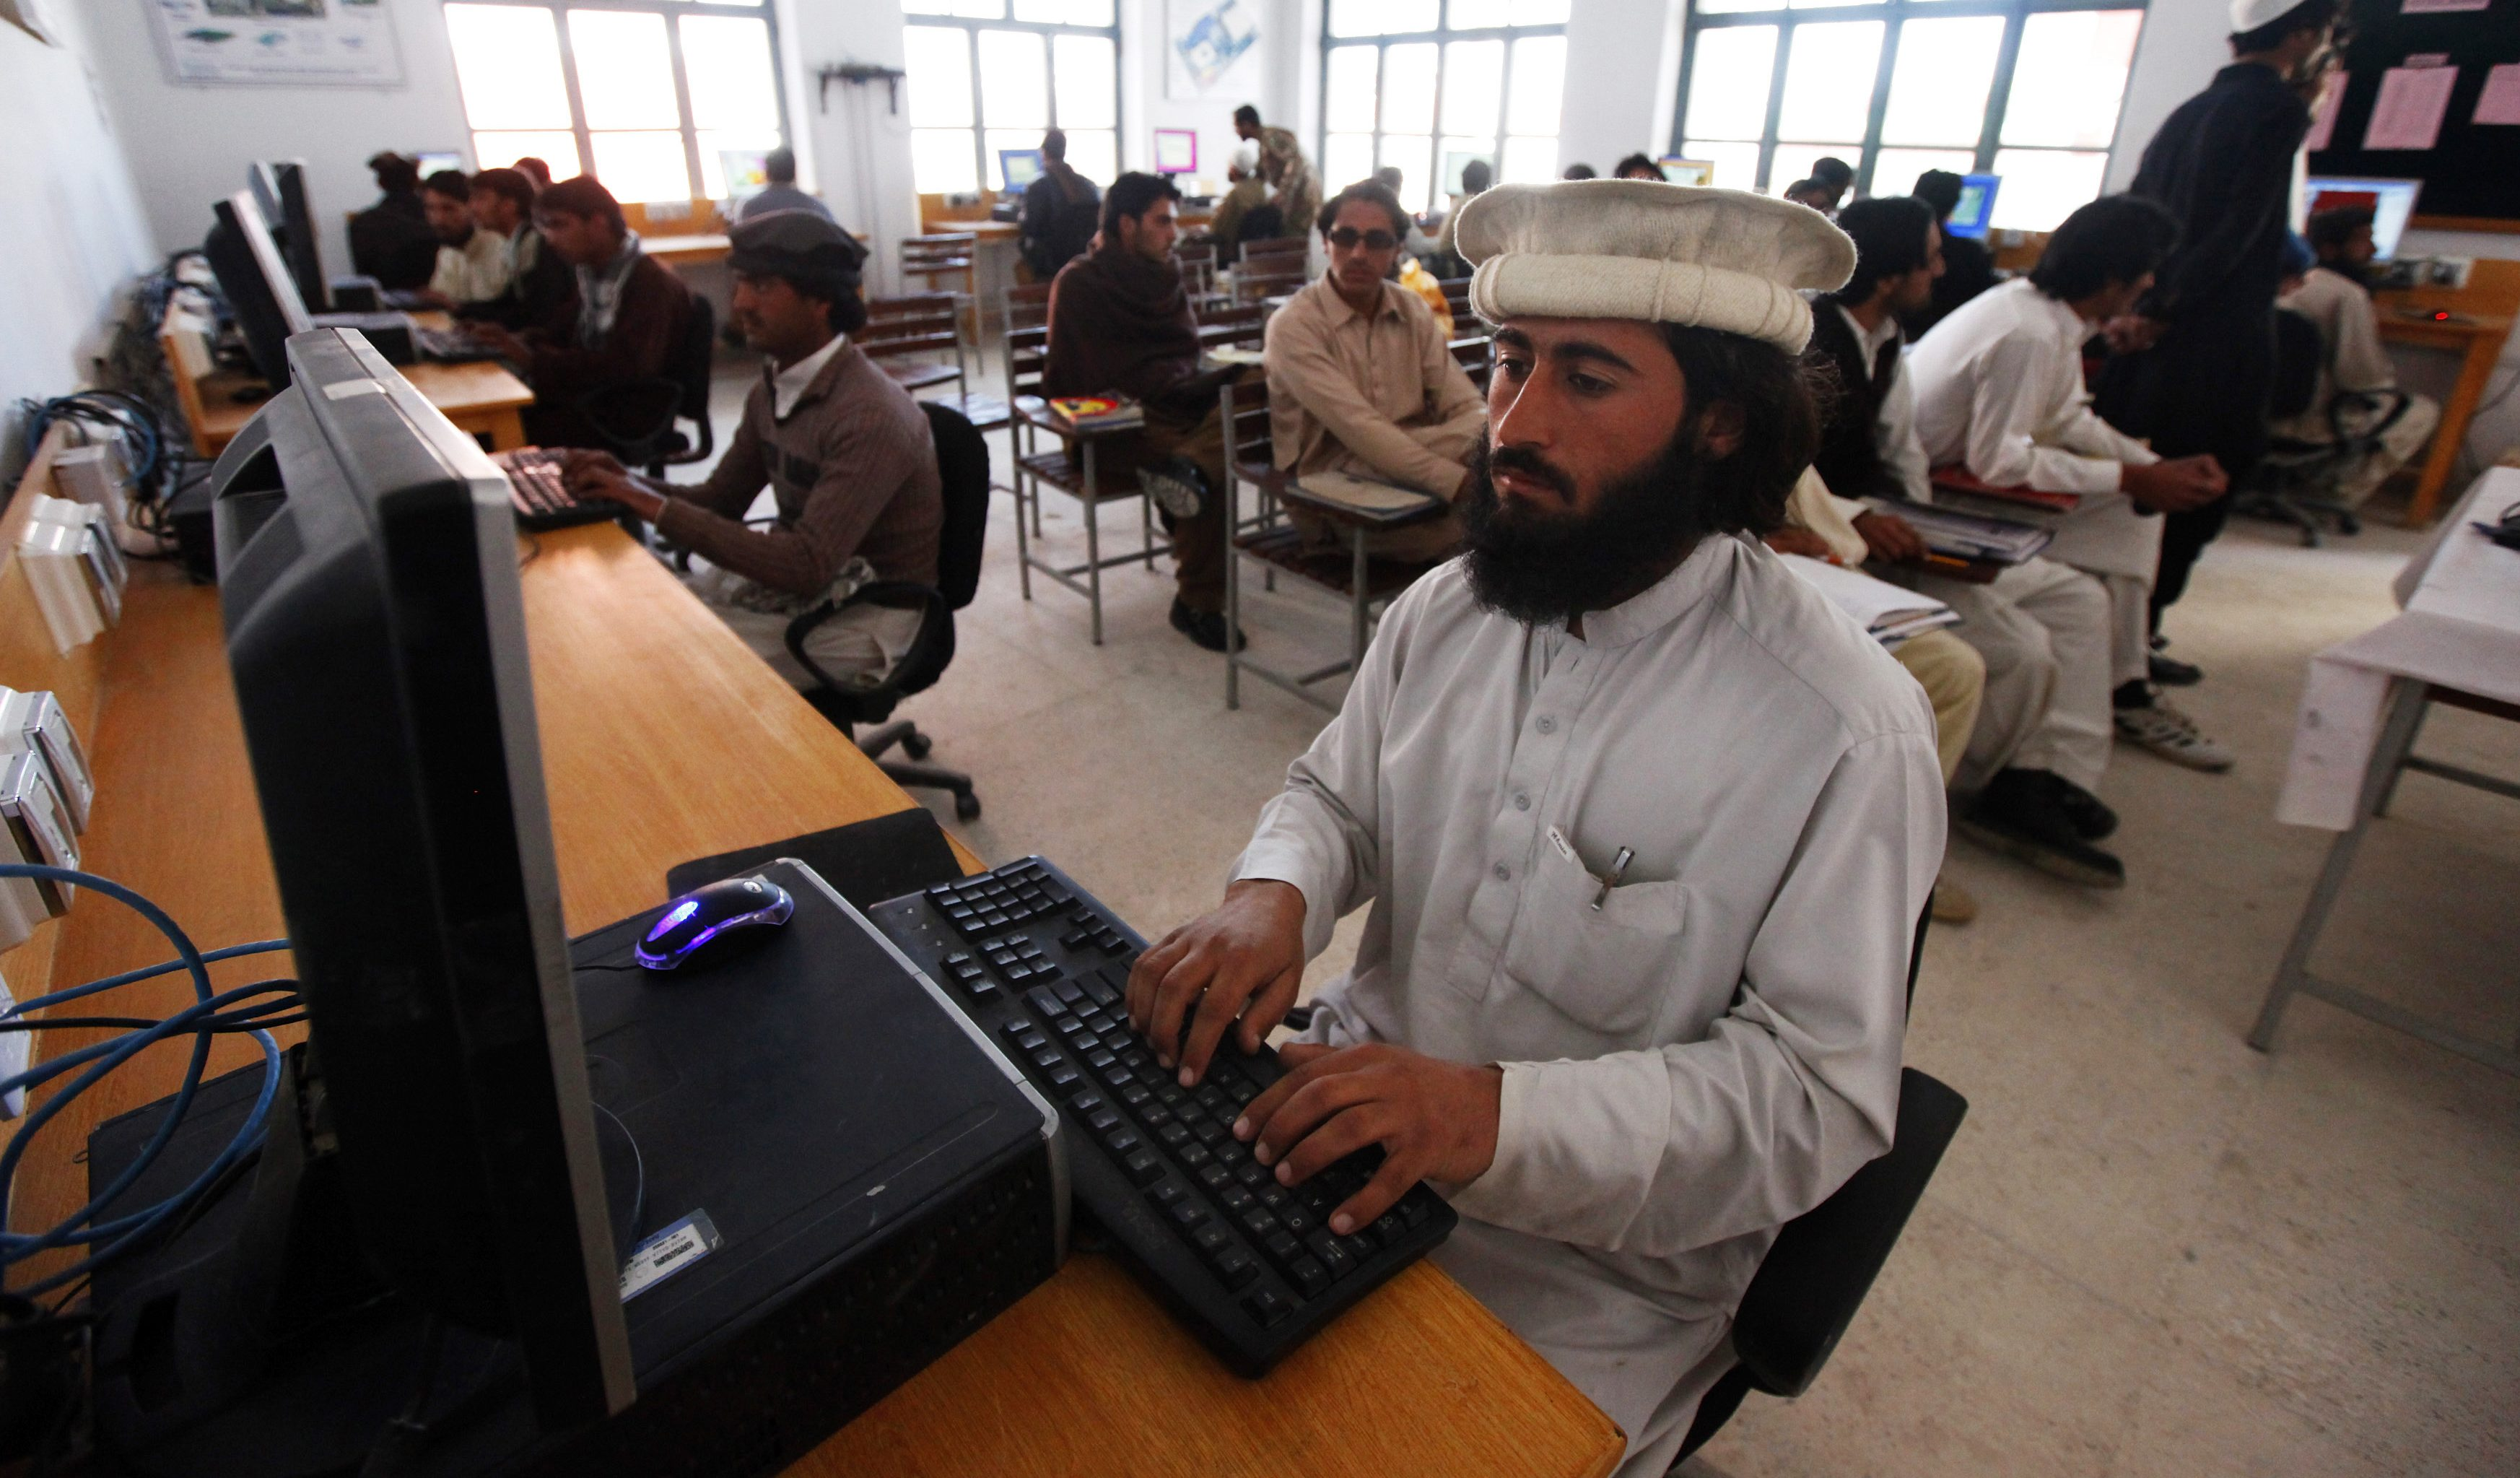 A man attends a computer class at the Wana Institute of Technical Training in Wana, the main town in Pakistan's South Waziristan tribal region bordering Afghanistan